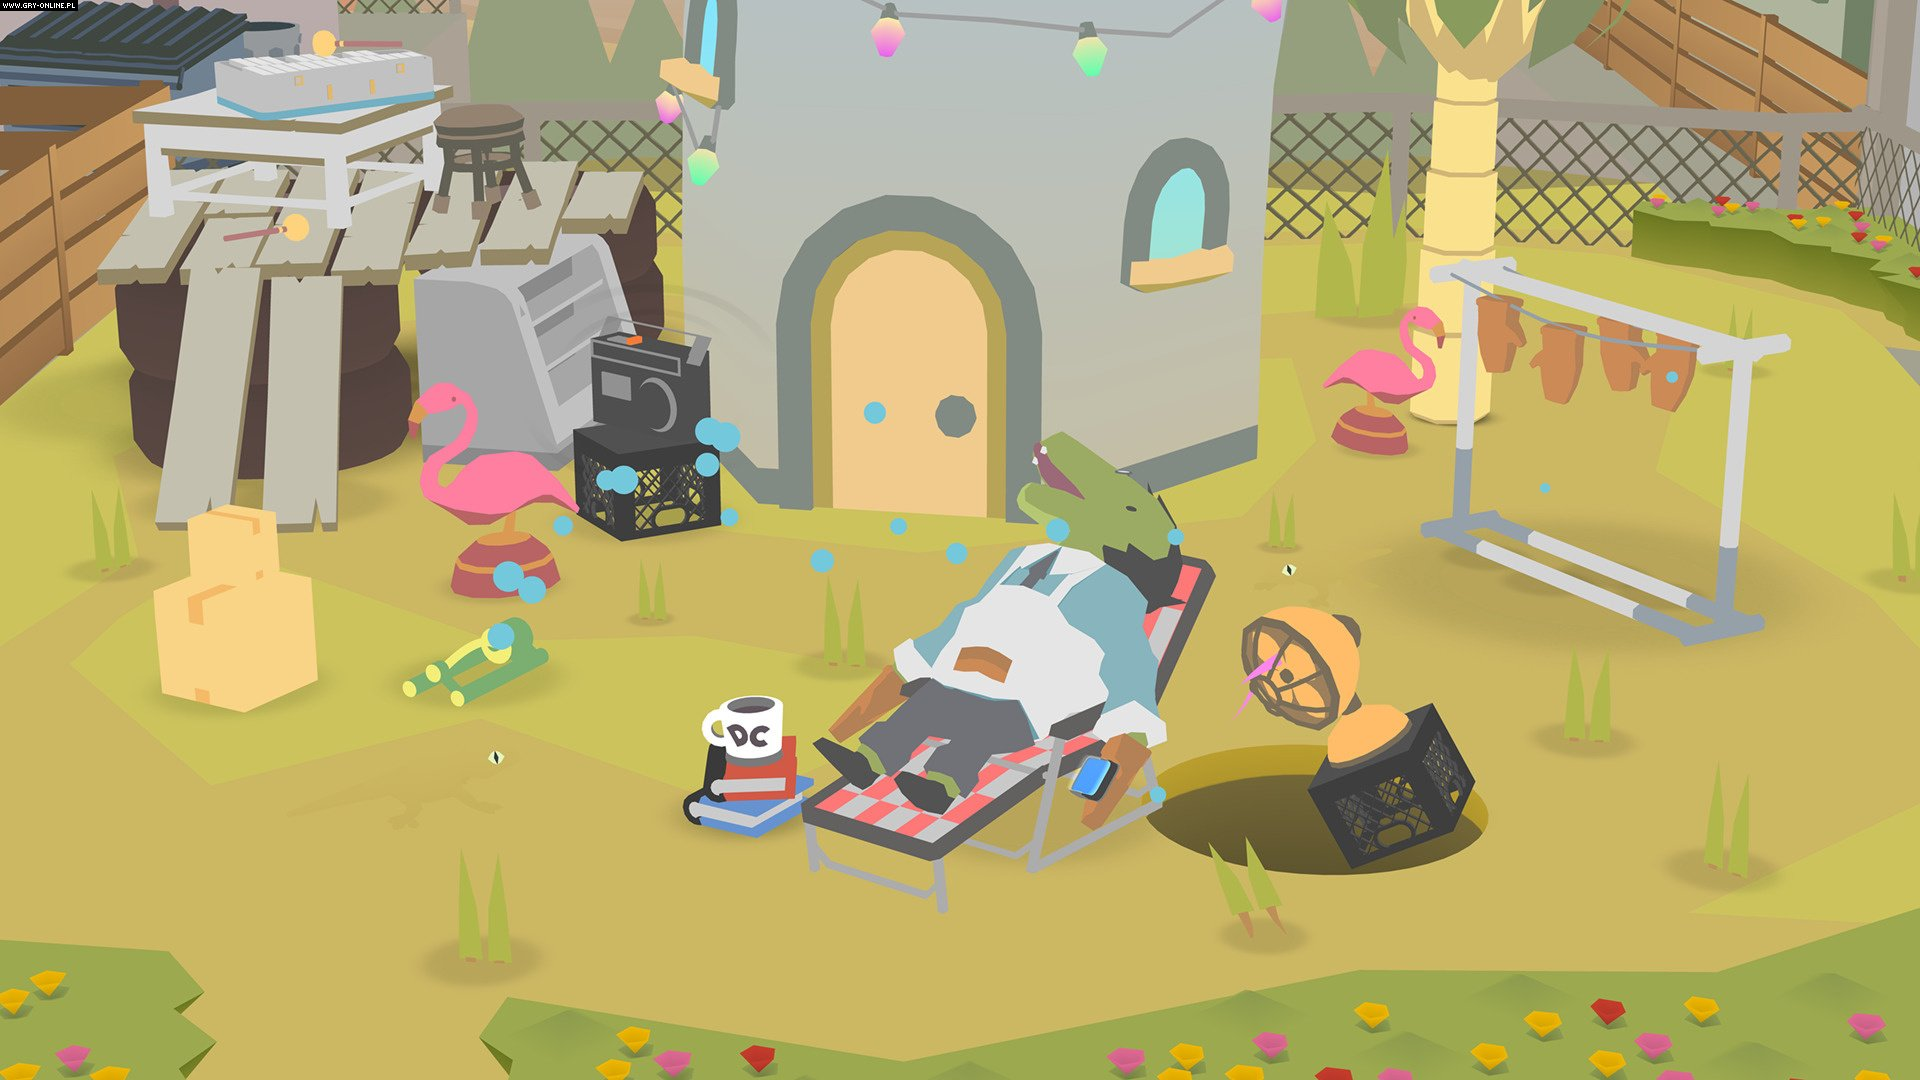 In Donut County, you control a hole in the ground that grows as it swallows parts of the environment. Pictured is a particularly messy lawn, belonging to a crocodile that wears oven mitts (at all times). Scattered about are more oven mitts, a sprinkler, old tires, lumber, books, and more.